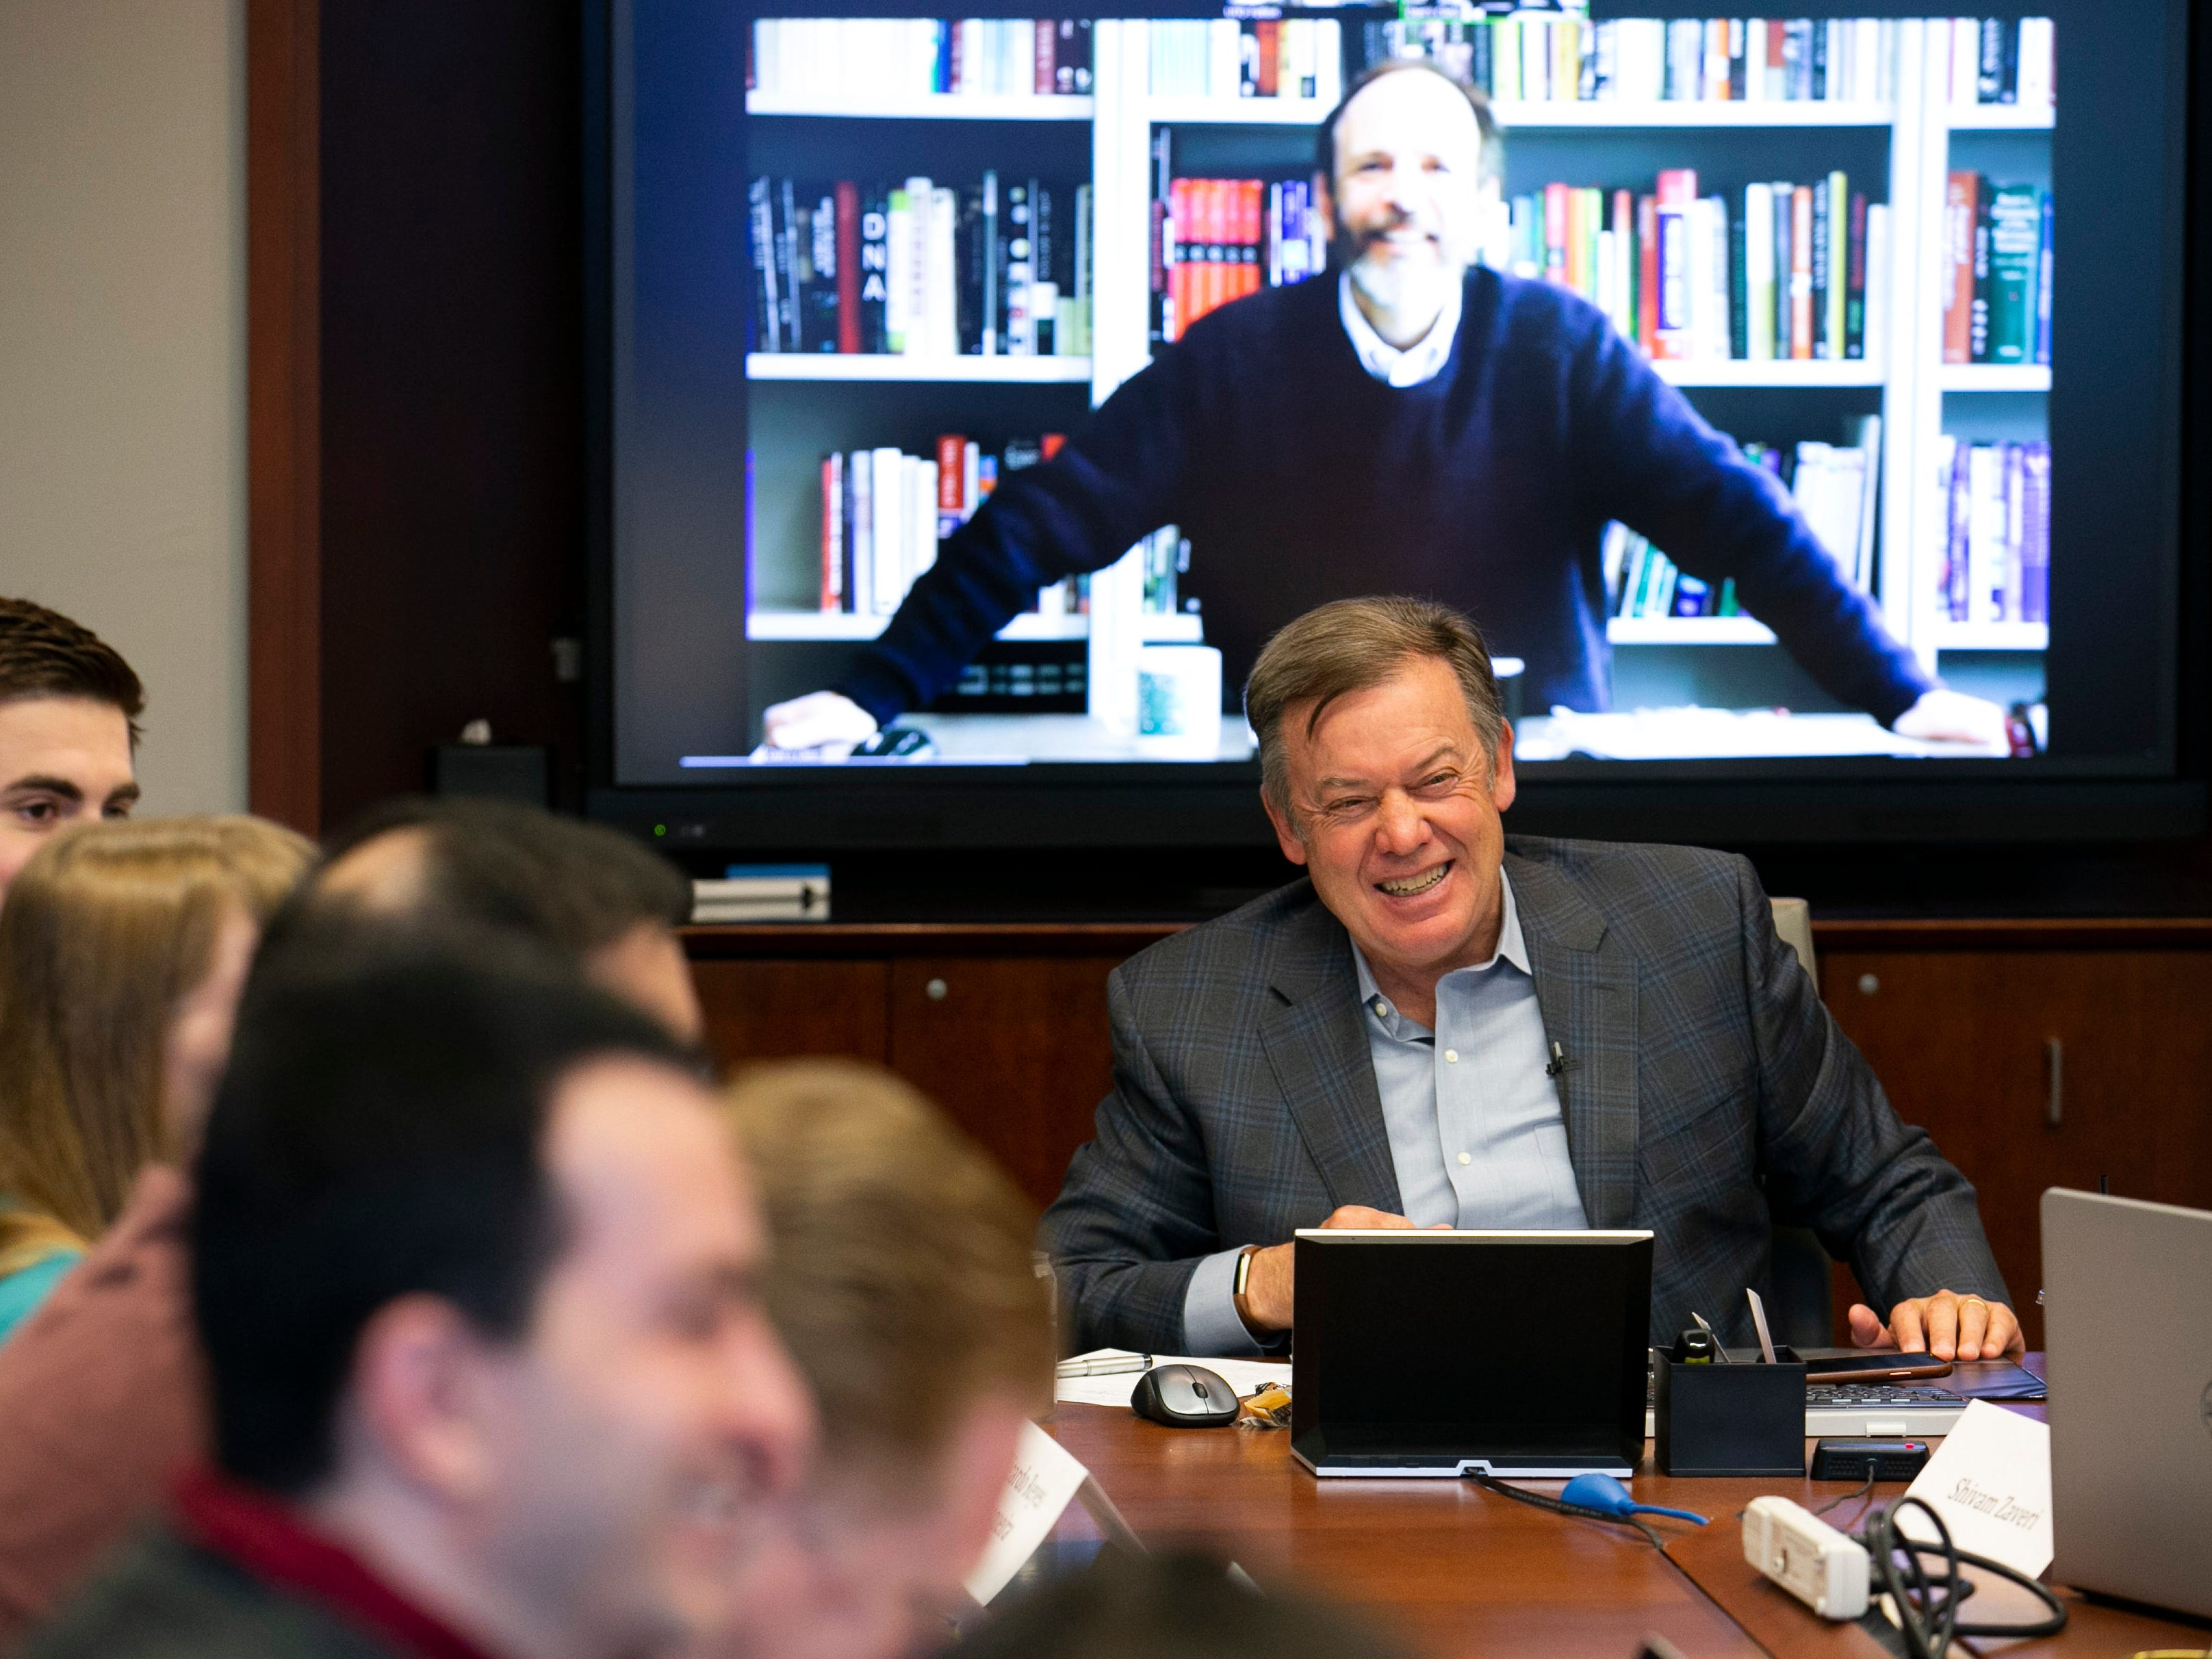 ASU President Michael Crow smiles while co-teaching the multi-disciplinary Science, Technology and Public Affairs class with Dan Sarewitz via a video-conference to ASU doctoral, masters and undergraduate students at the Fulton Center at ASU in Tempe on Jan. 30, 2019.